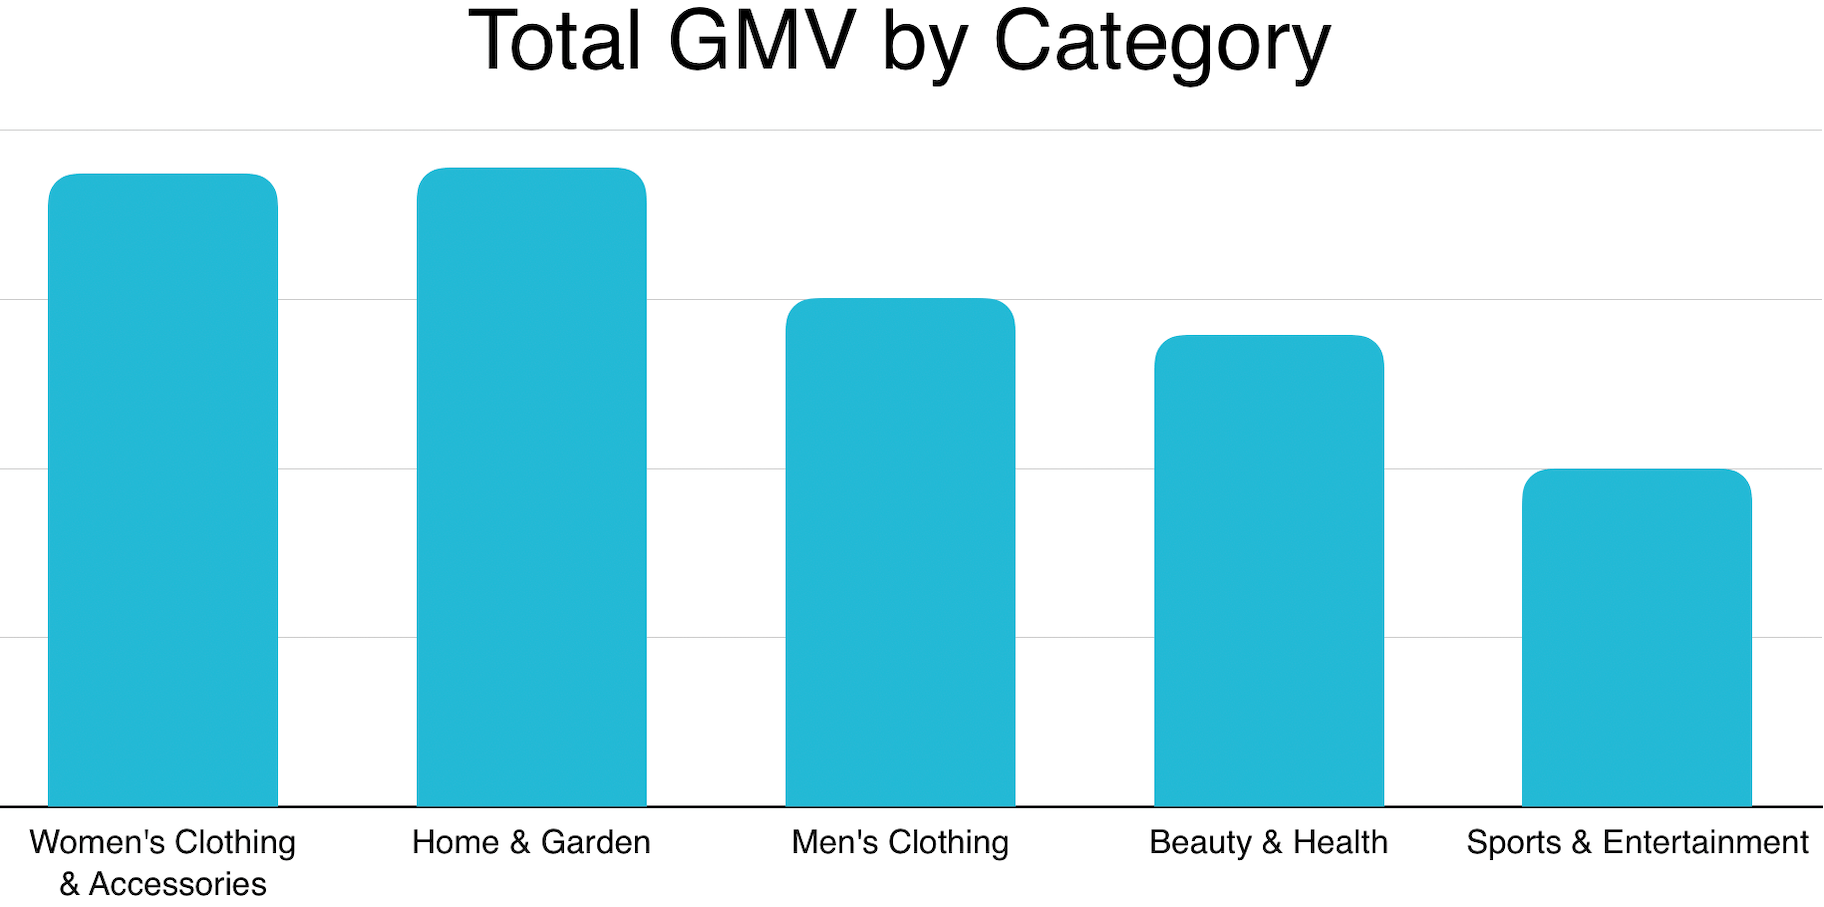 2019 Niche UK Markets by GMV